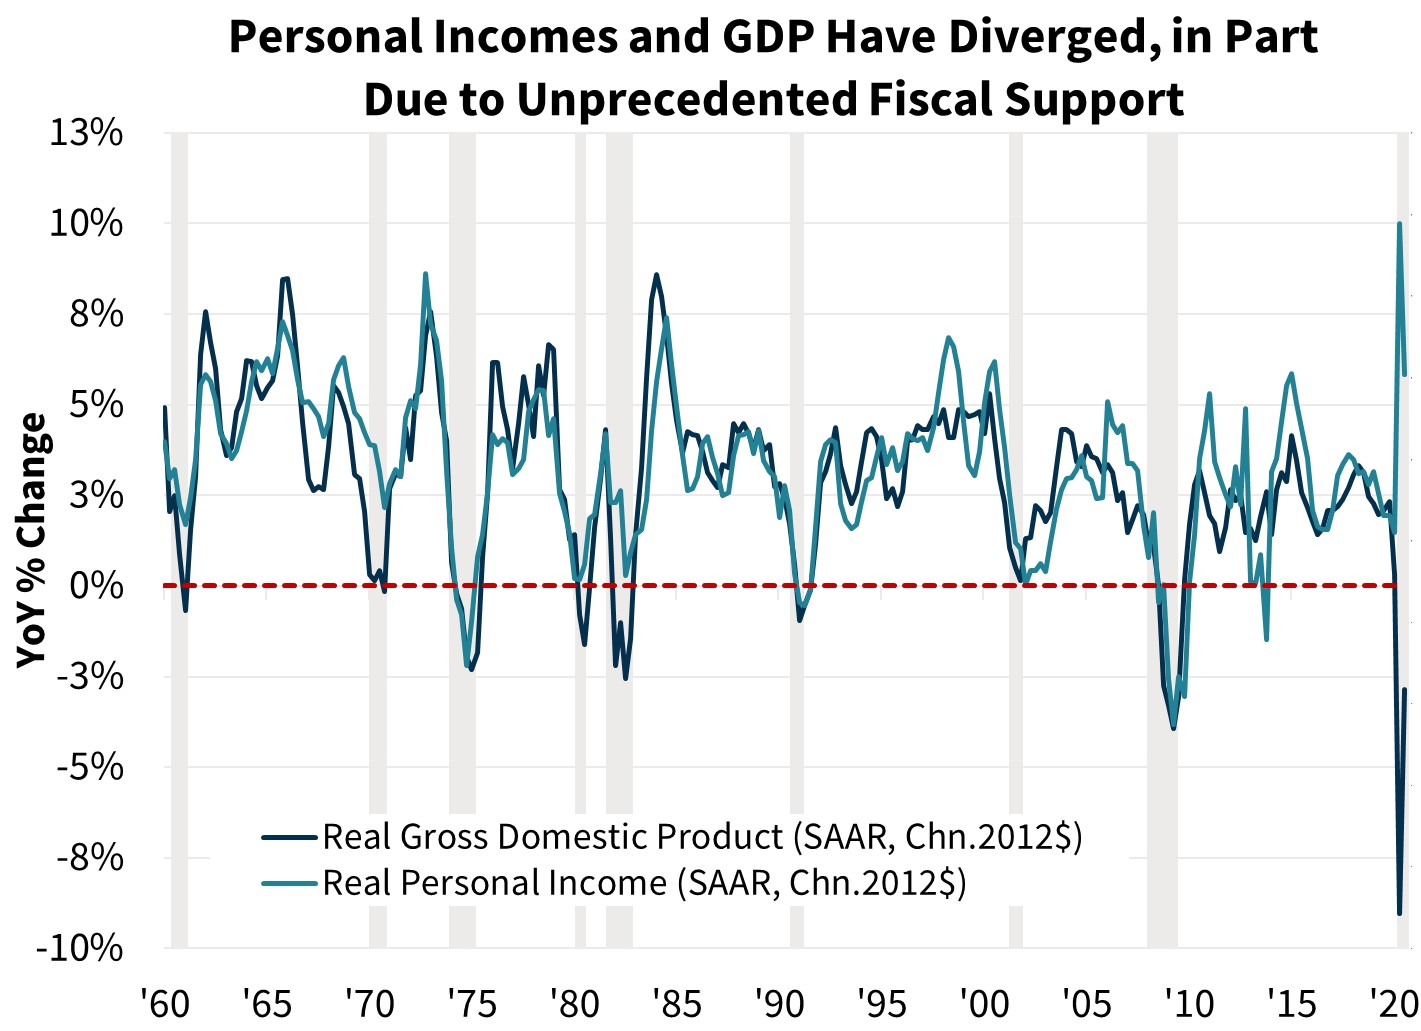 Personal Incomes and GDP have Diverged, in Part Due to Unprecedented Fiscal Support